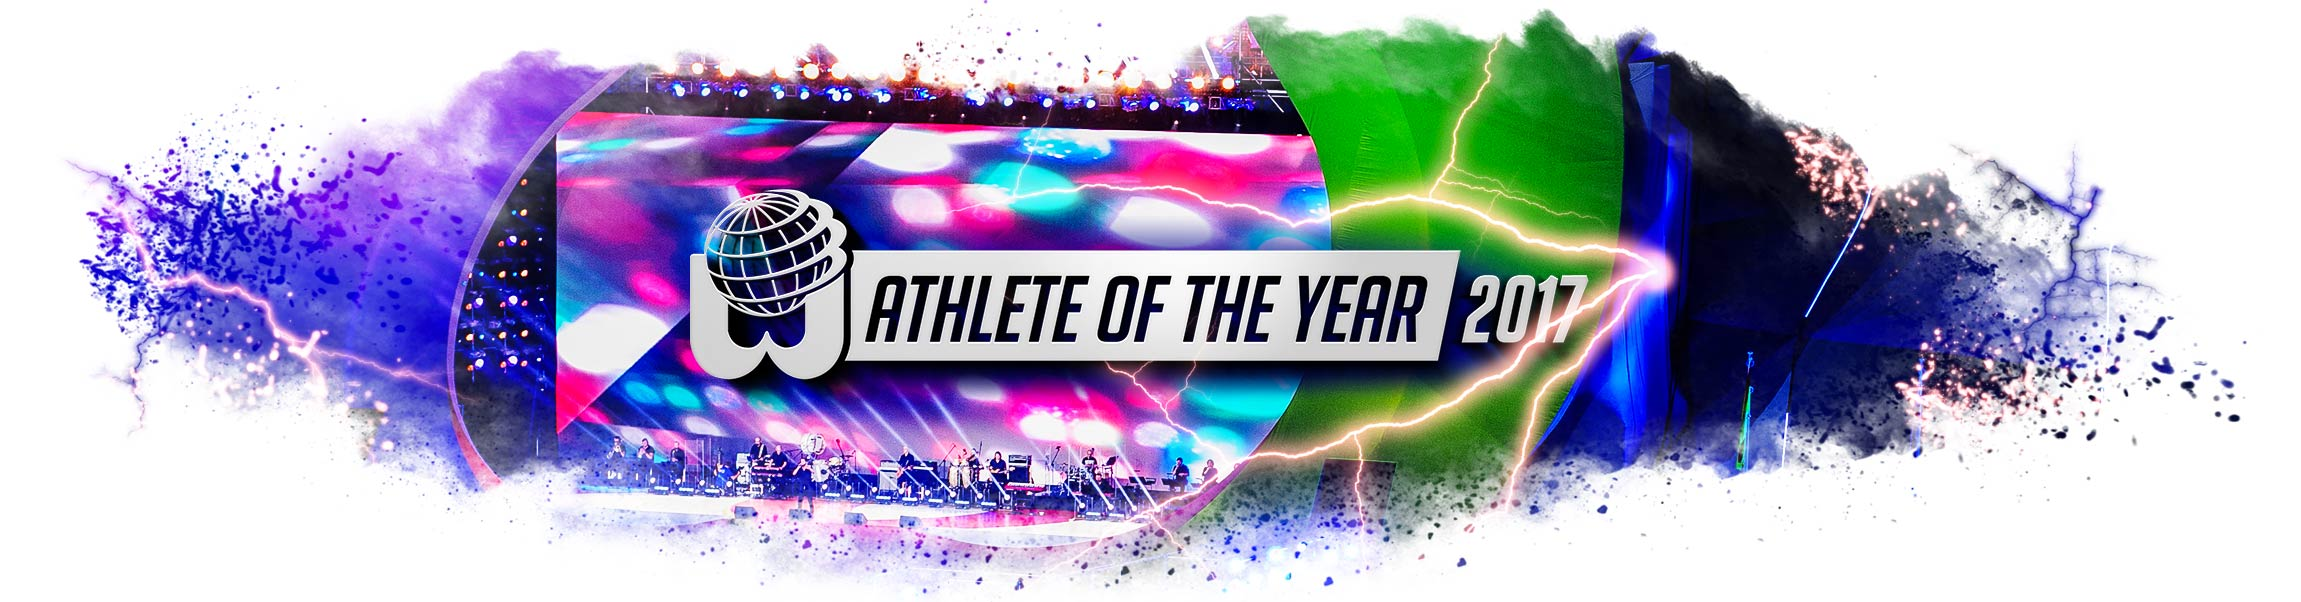 iwga athlete of the year header